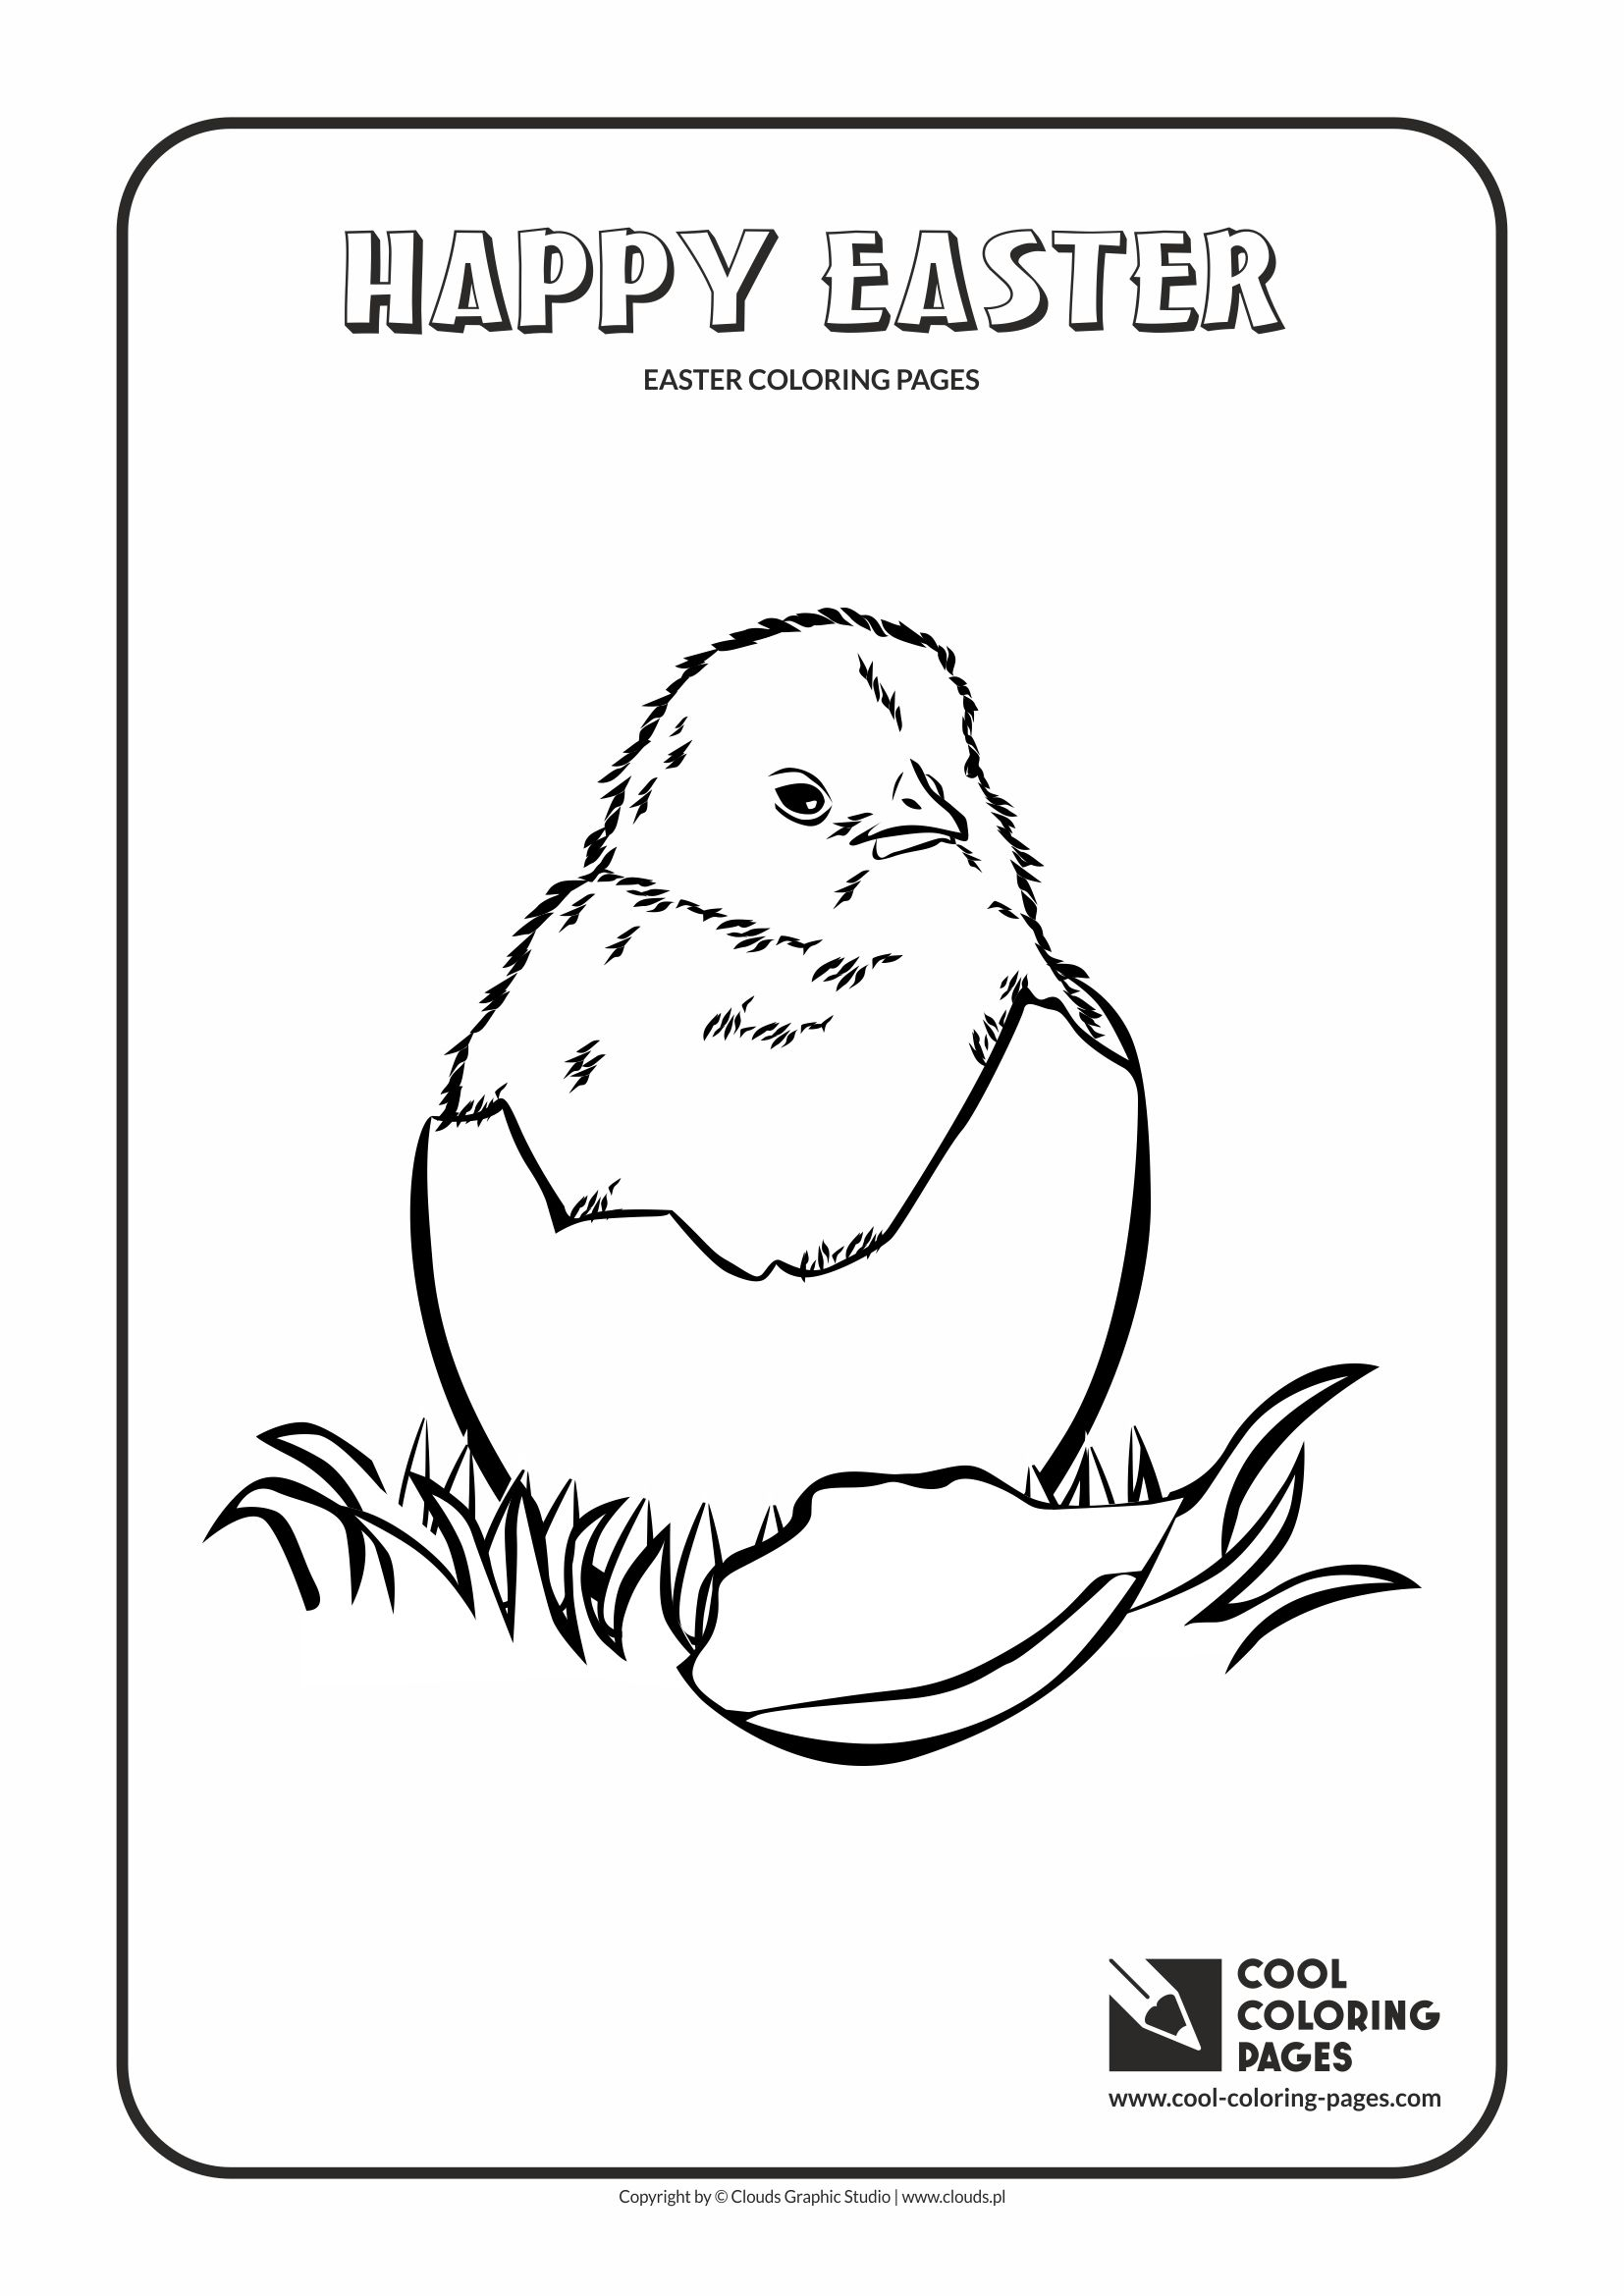 Cool Coloring Pages Easter Coloring Pages Cool Coloring